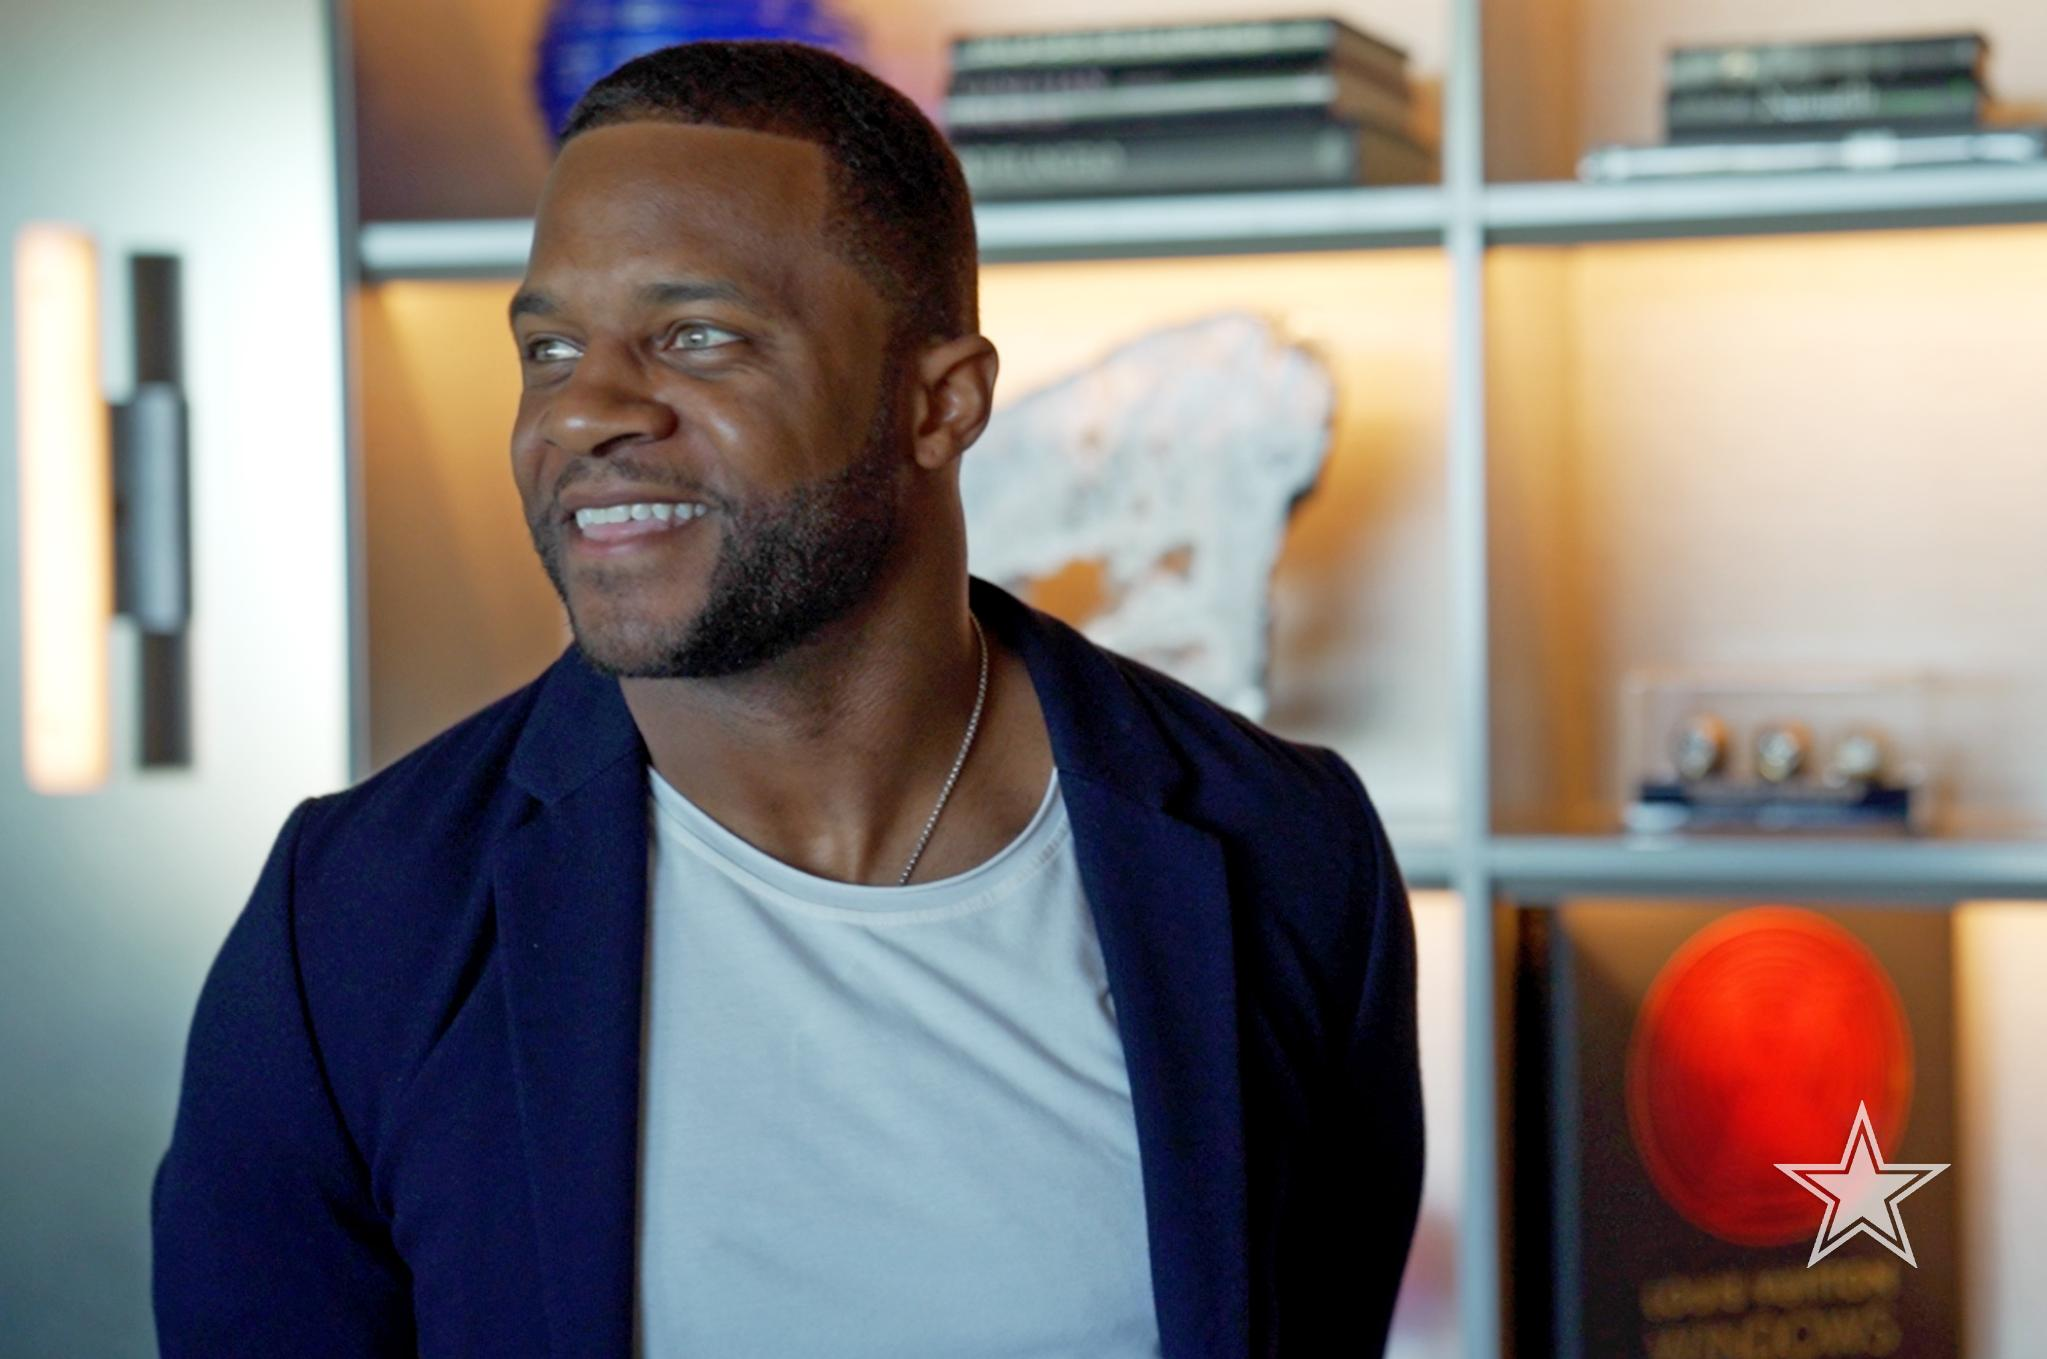 Now joining the #DallasCowboys, @rcobb18 is 'excited for a fresh start.'   Read more �� https://t.co/pNyNYP5HEb https://t.co/Bm5vNQgBZf